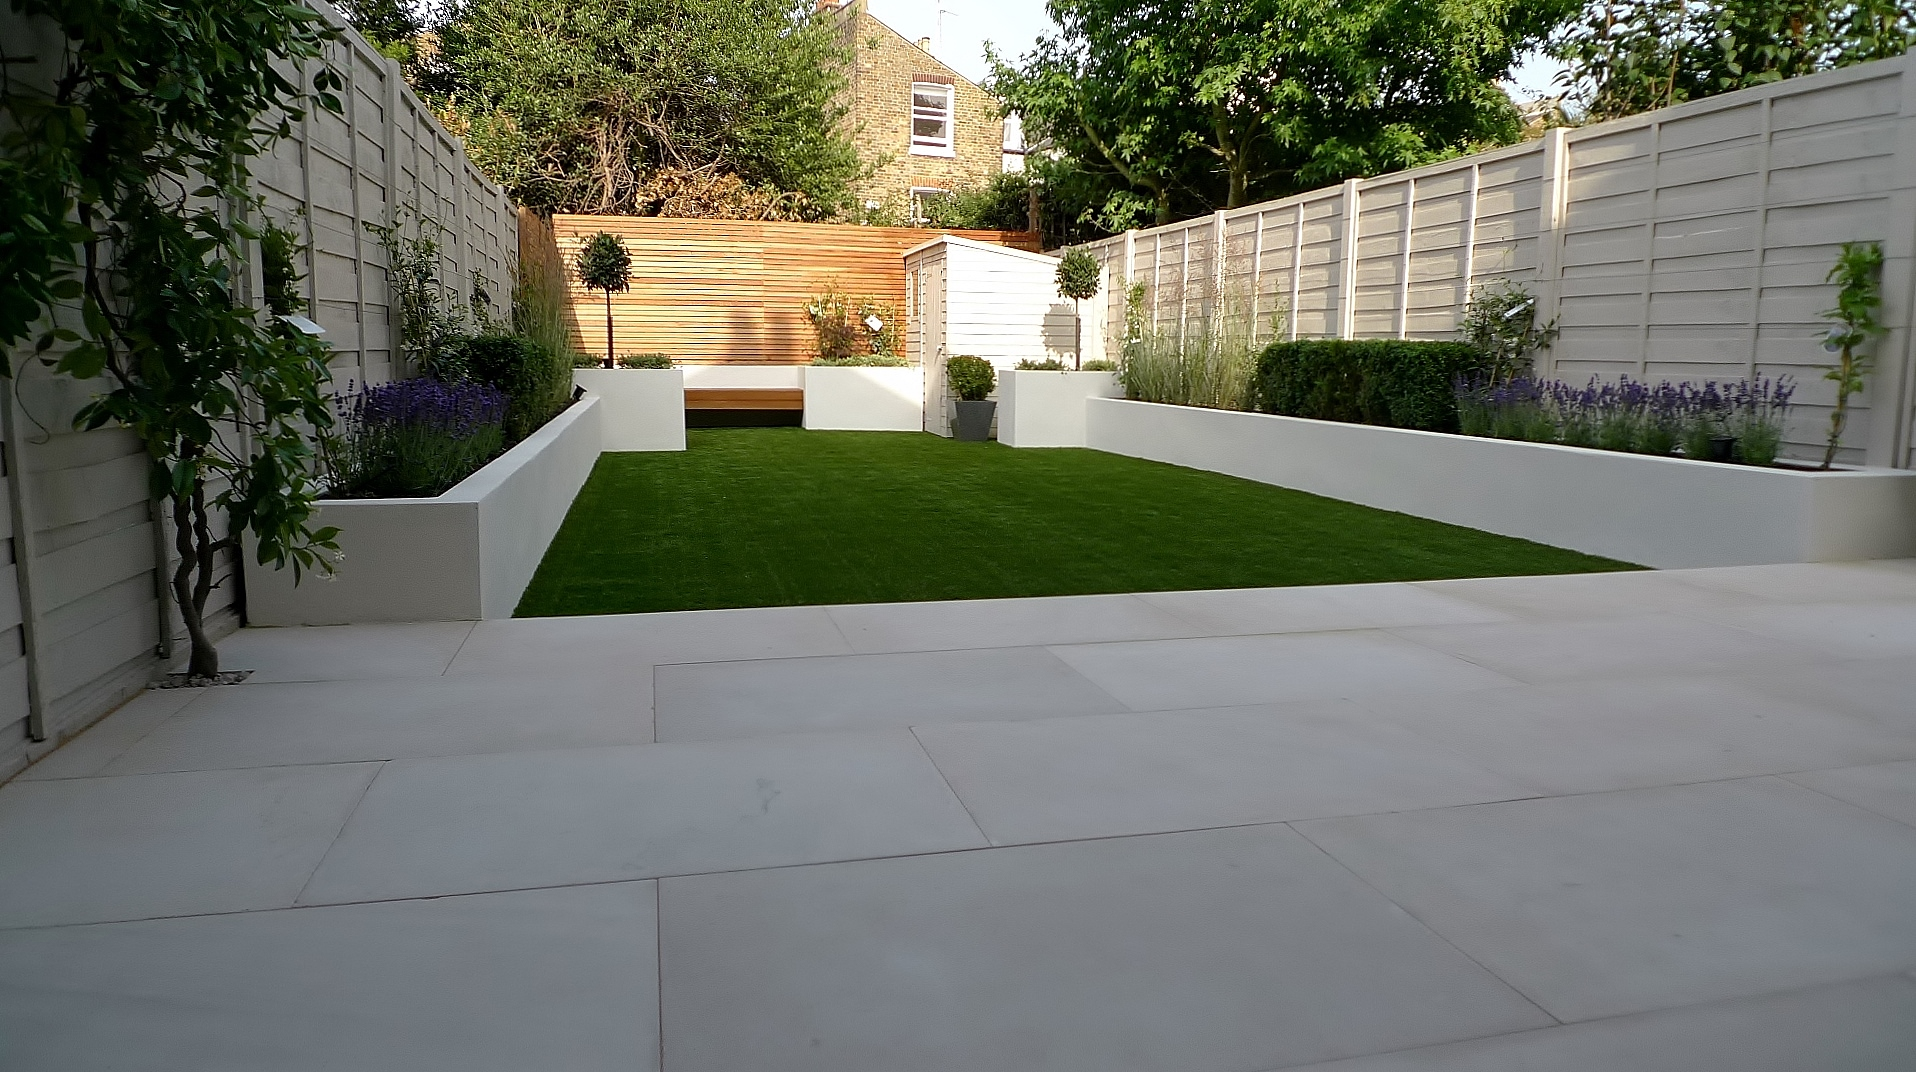 Anewgarden london garden blog for Modern garden design ideas